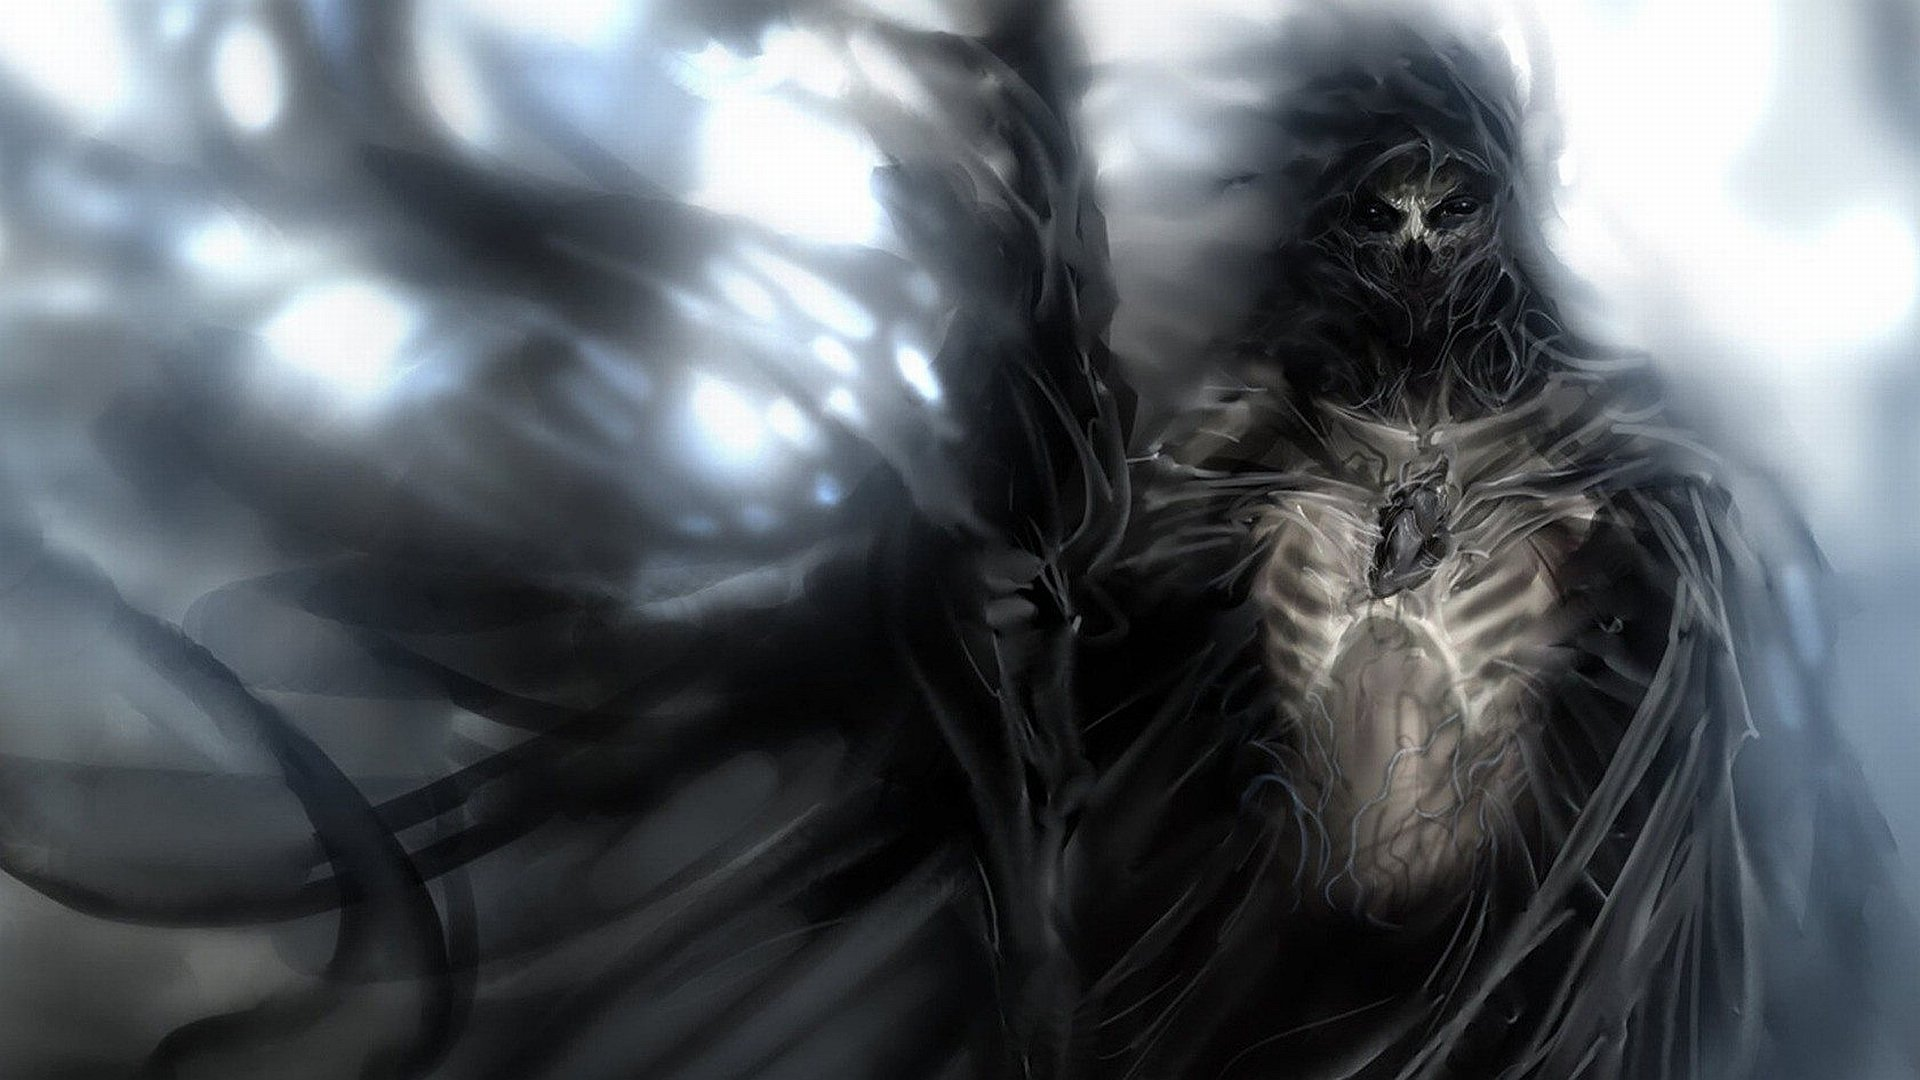 Fantasy - Dark  Death Grim Reaper Wallpaper